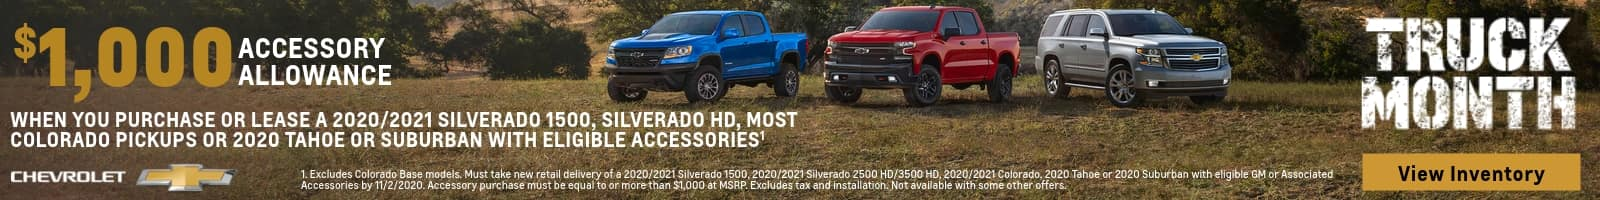 01_2020_OCTOBER_TRUCK MONTH PACKSHOT_NATIONAL_1600x200 BANNER